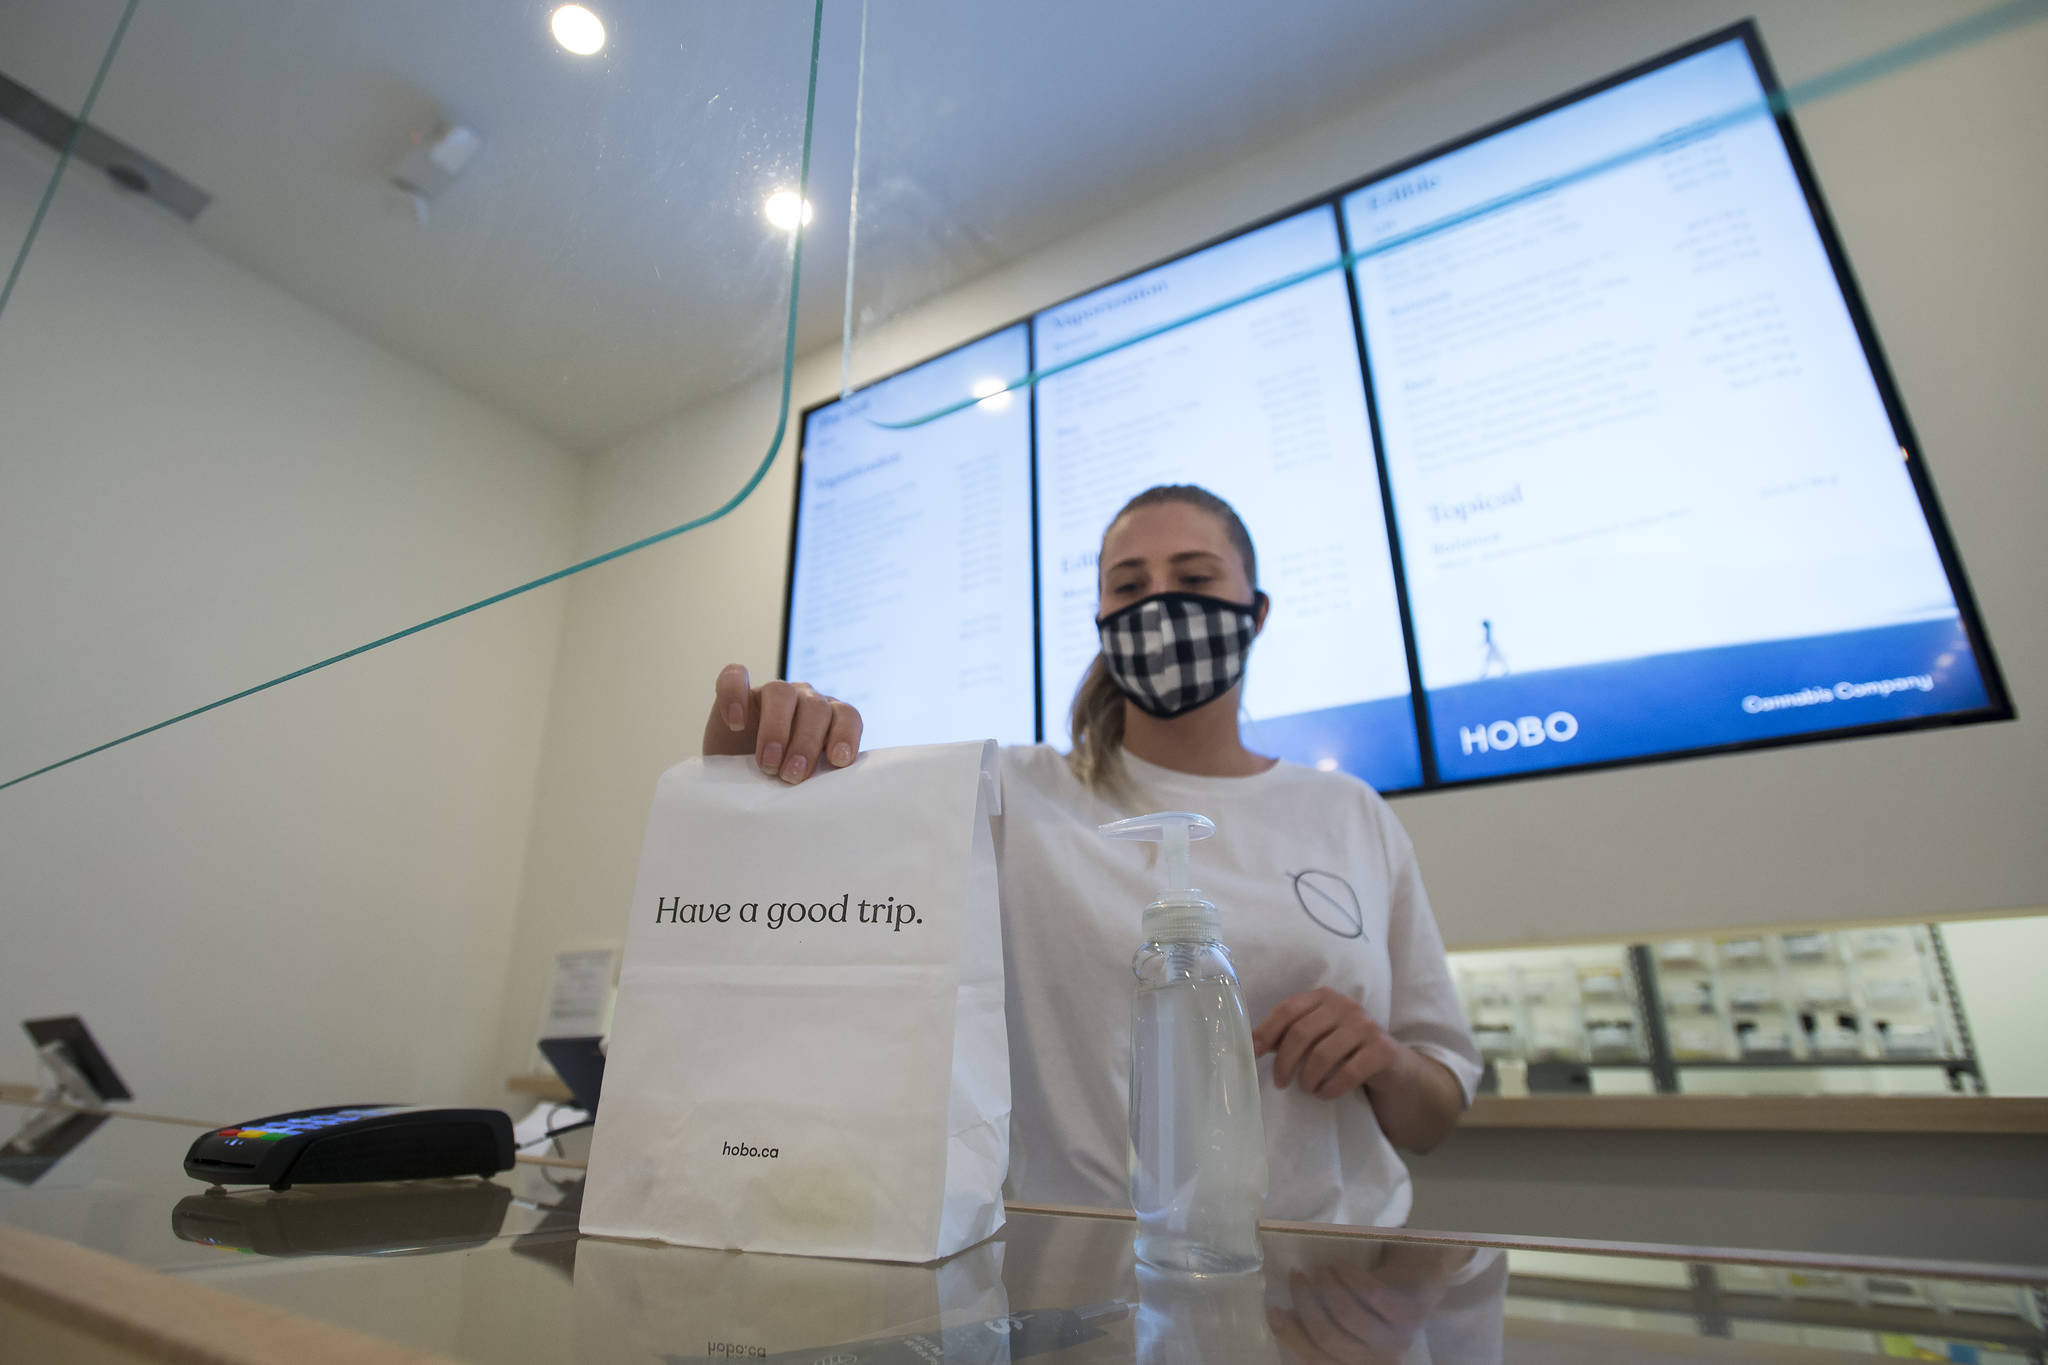 Employee Sophia Lovink shows off a bag of merchandise in Toronto on Thursday, June 11, 2020. (THE CANADIAN PRESS/Nathan Denette)